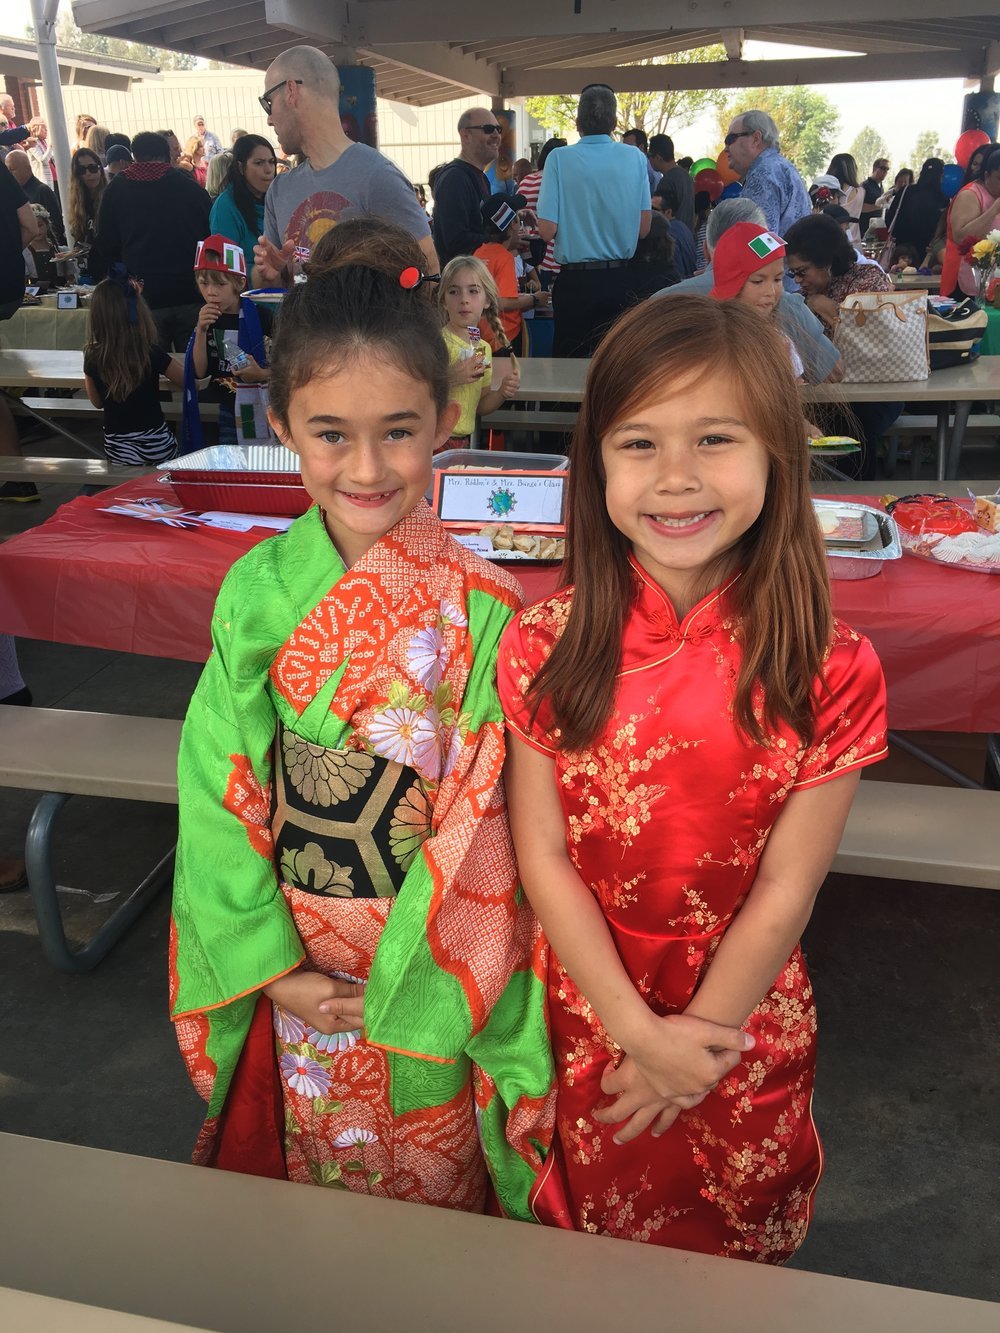 Mia Snow and Marissa Hilde shine in their kimono and qipao. Photo courtesy: Sheri Snow